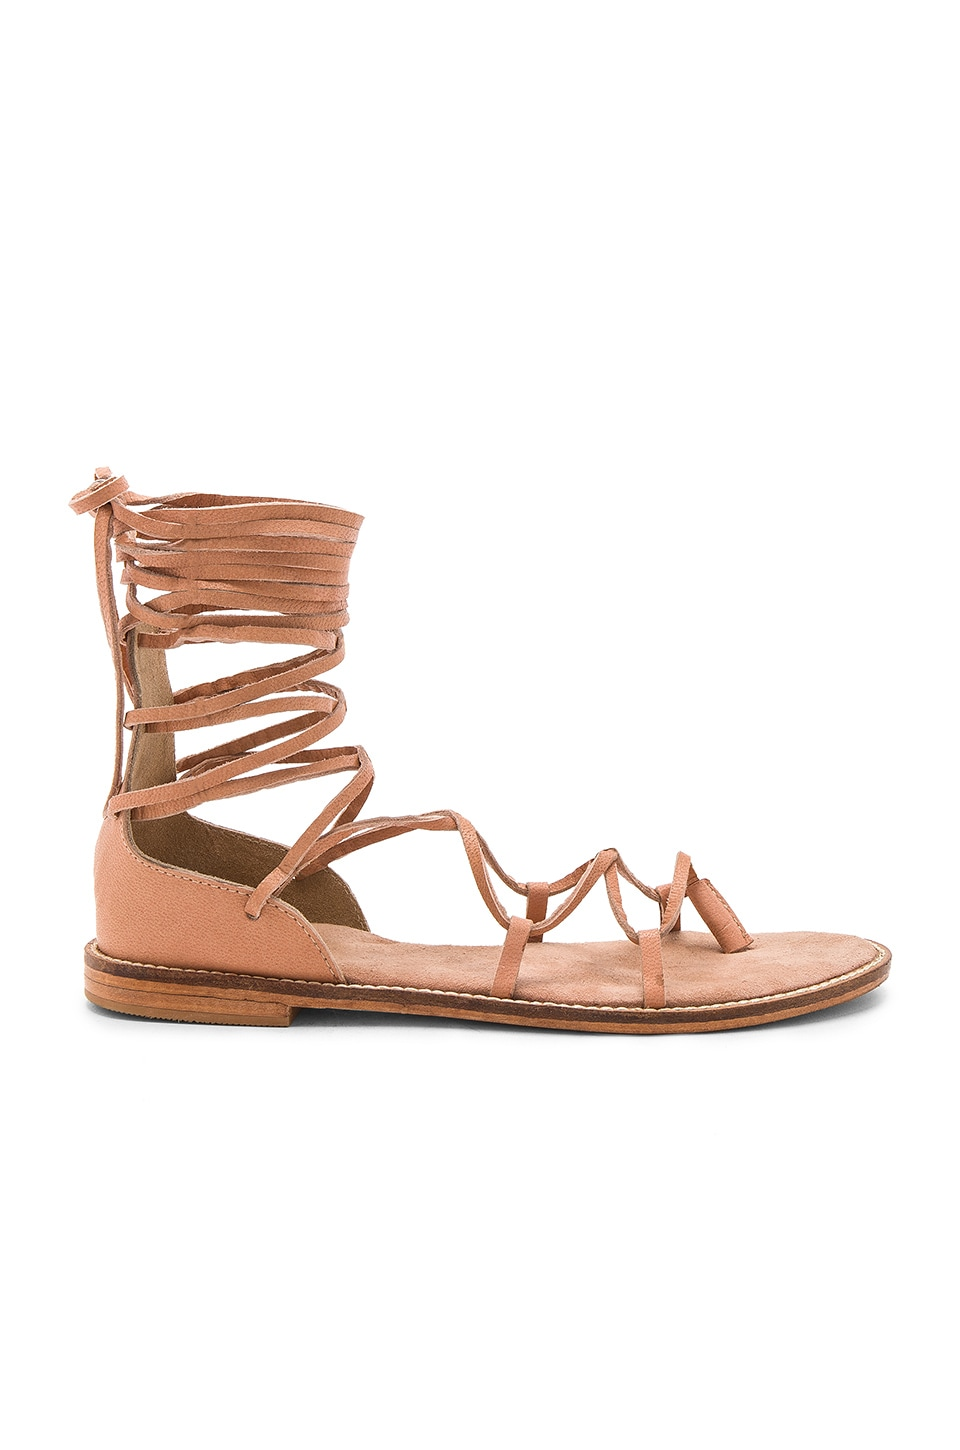 Pave Sandal by Jaggar